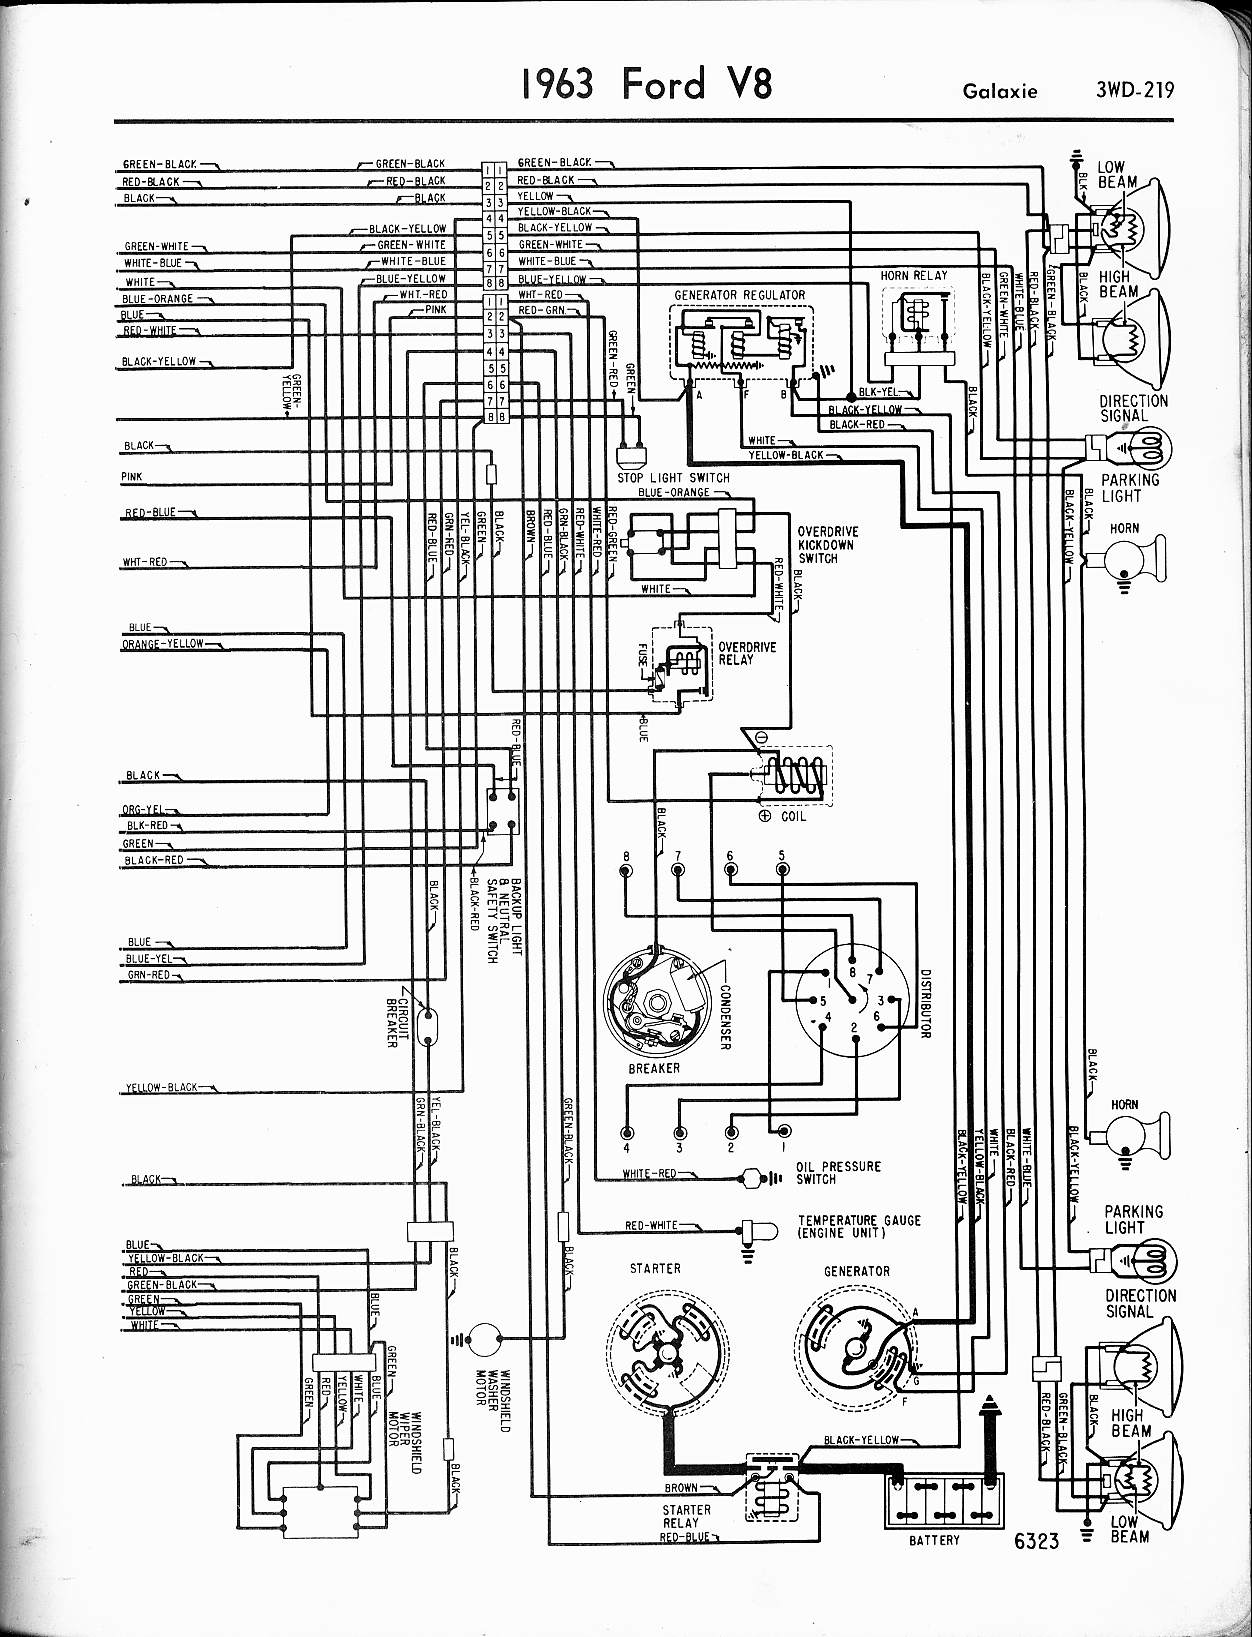 1994 lincoln wiring diagrams with 477797 Circuit Breaker on Dcboard moreover Mump 0209 Ford Mustang Brakes in addition 4 7 Liter V6 Chrysler Firing Order as well 1151693 Proportioning Valve 77 F150 And Weak Brakes 2 furthermore 2011 05 01 archive.